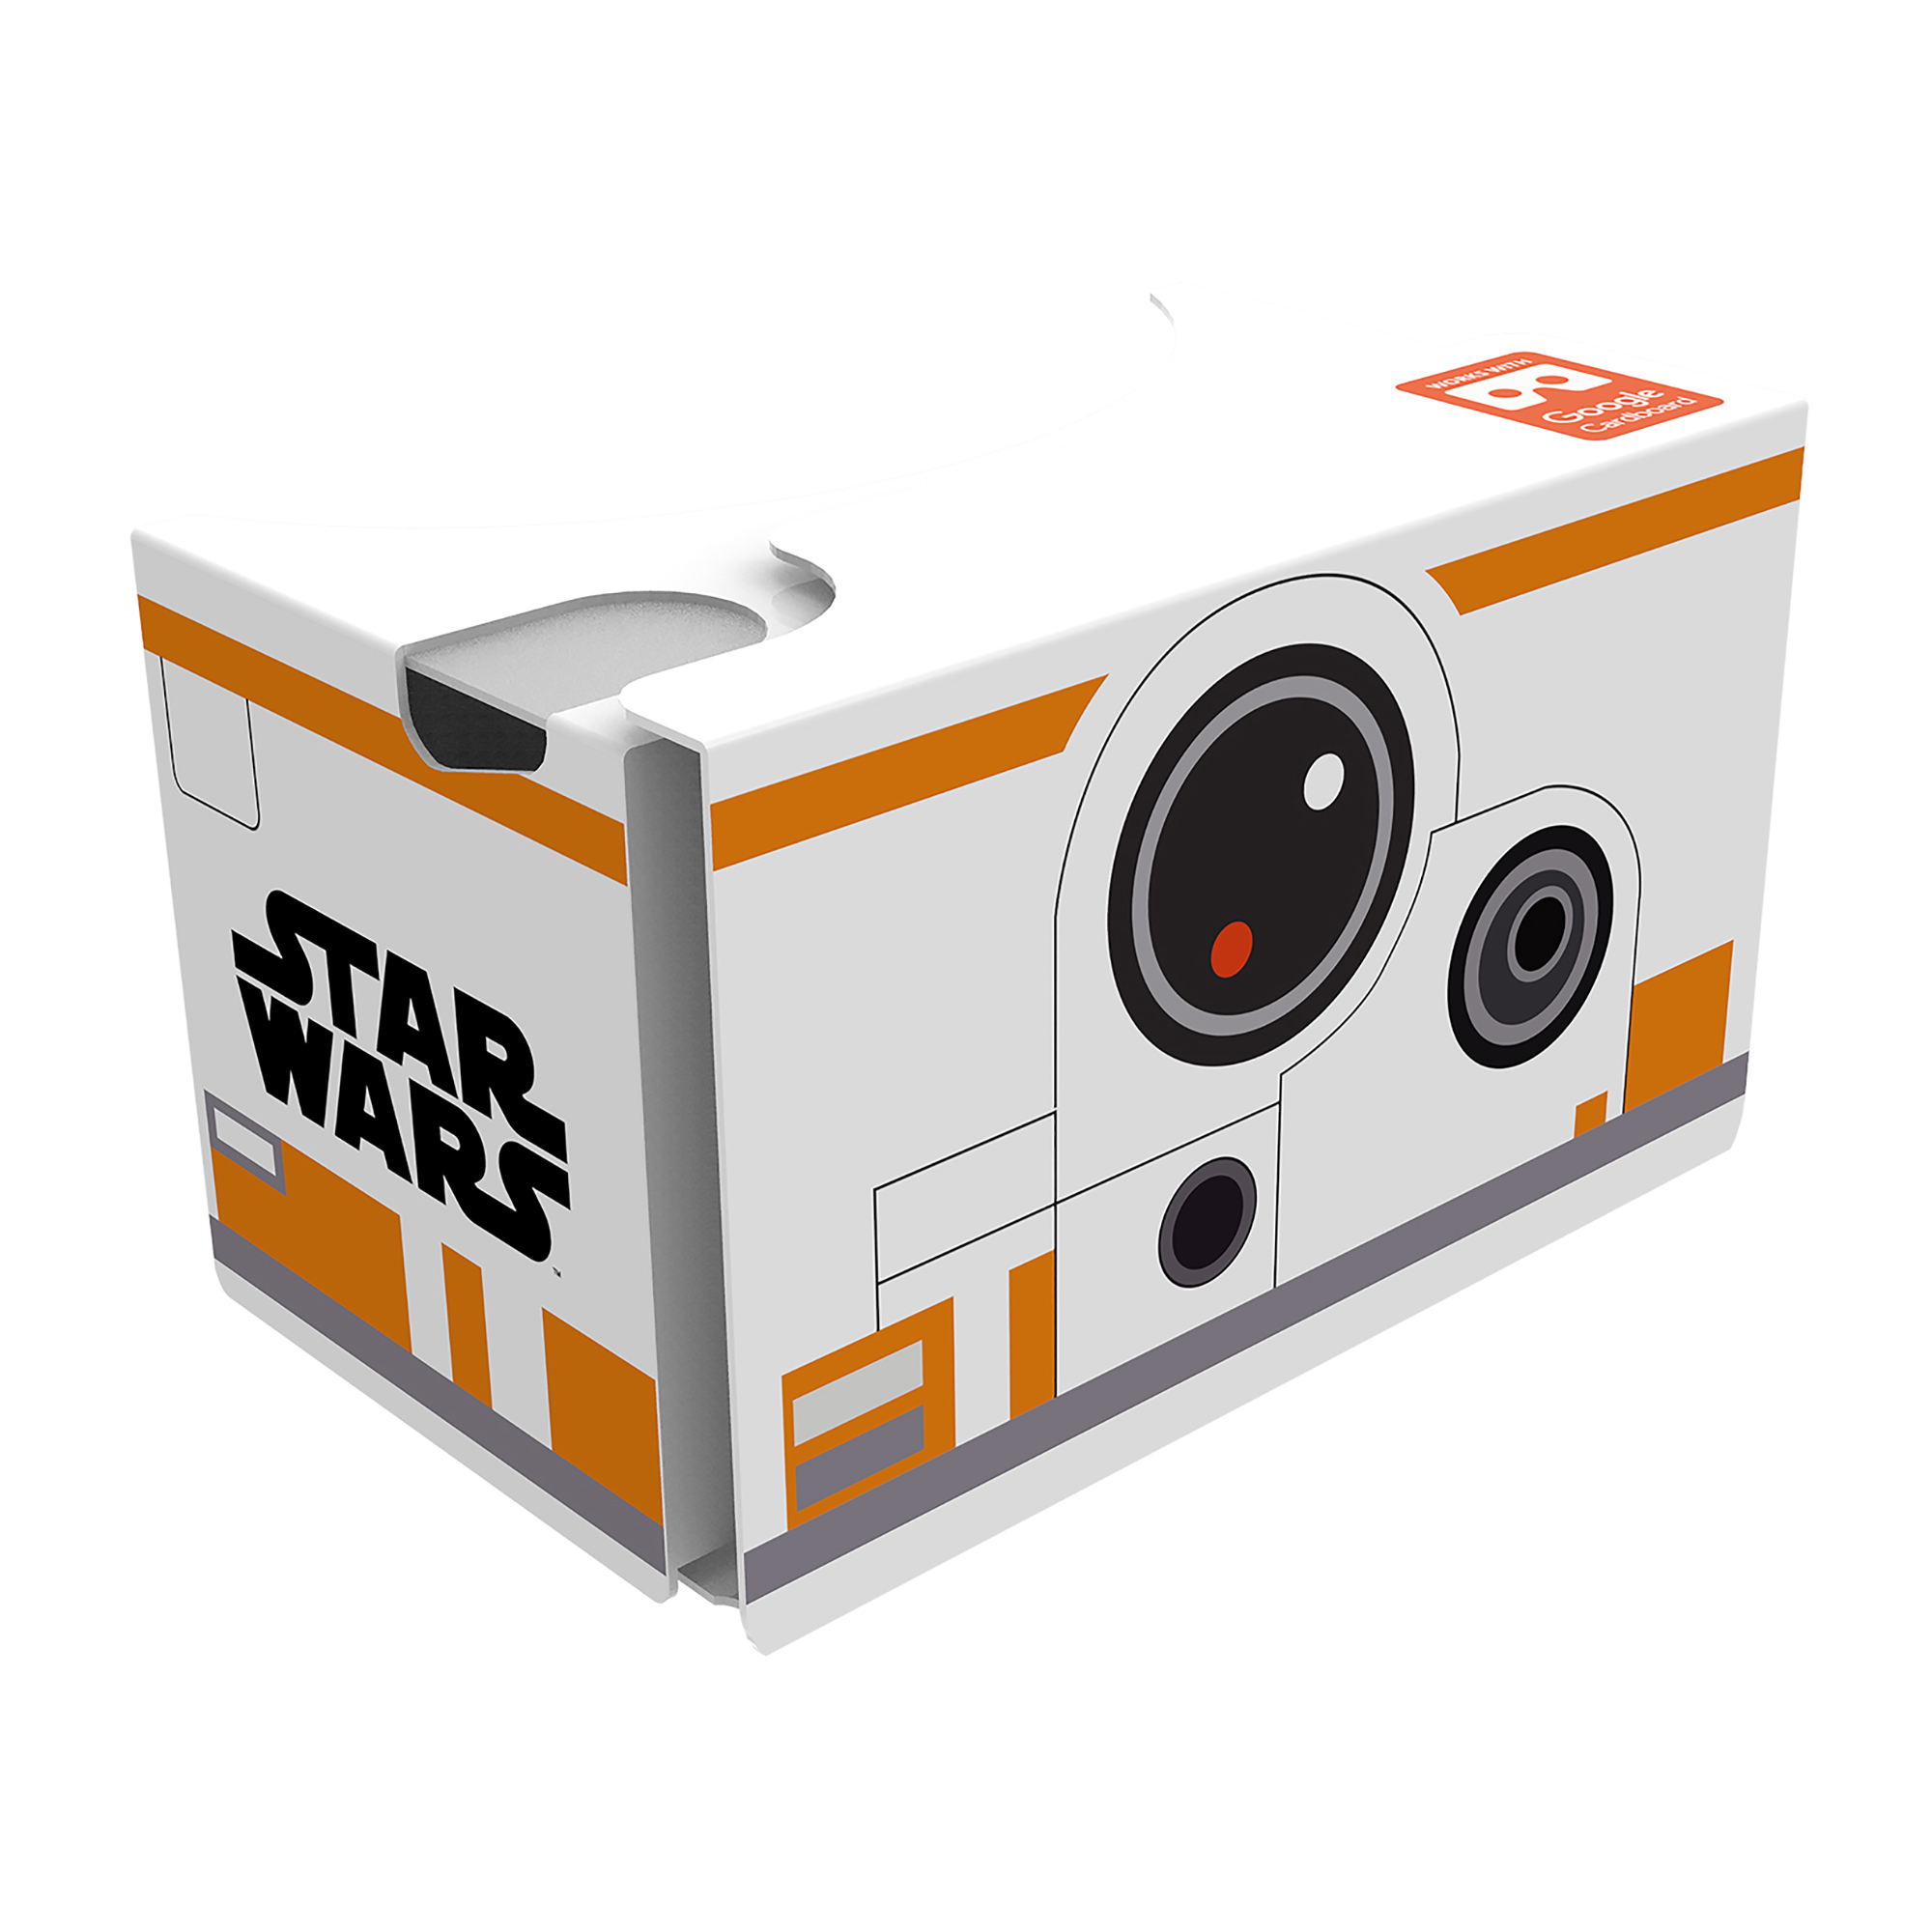 Star Wars BB8 Virtual Reality Viewer